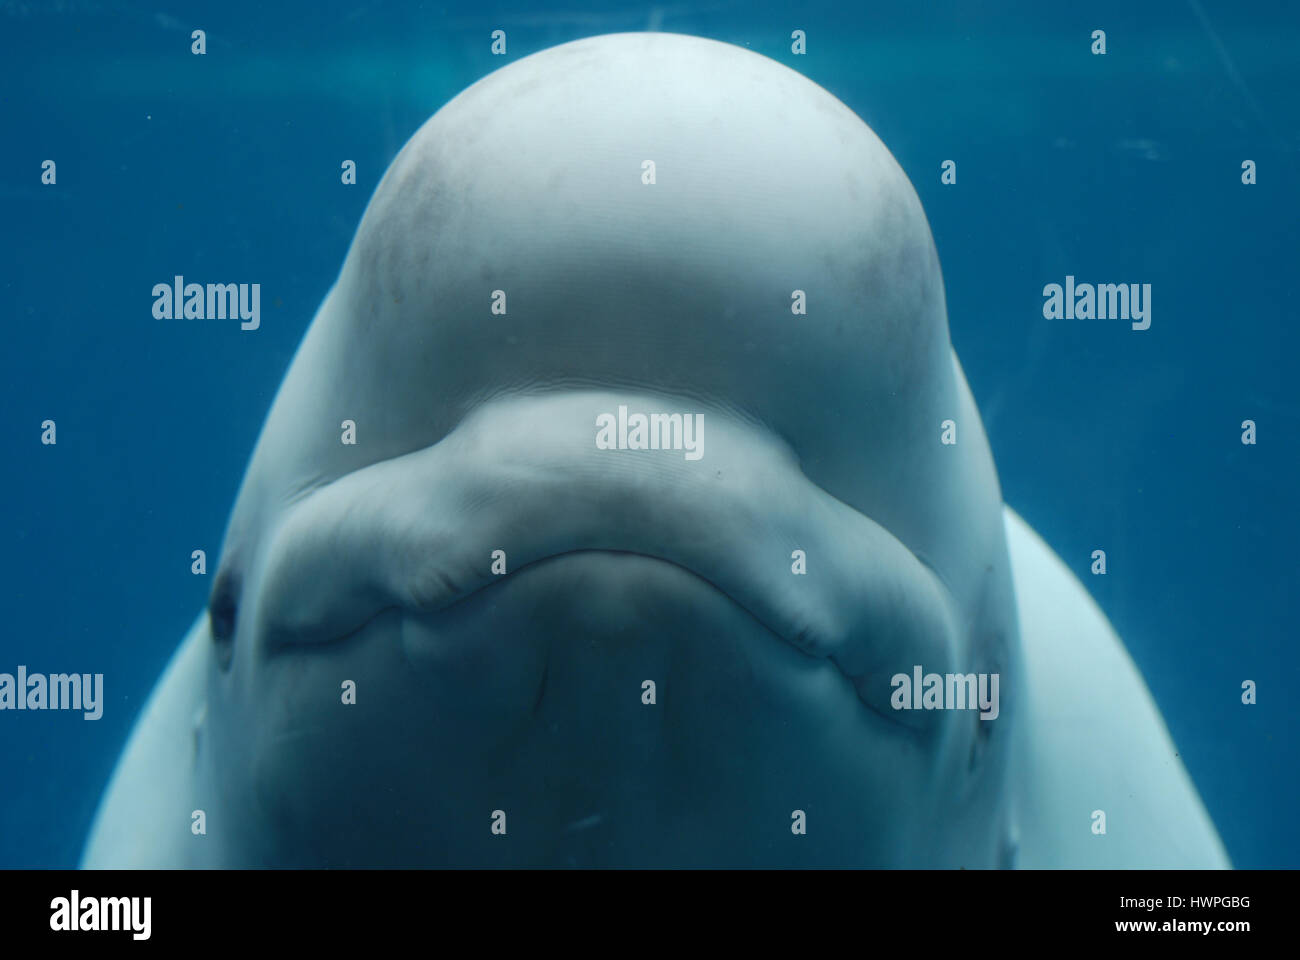 Smiling happy face of a beluga whale under the water's surface. - Stock Image